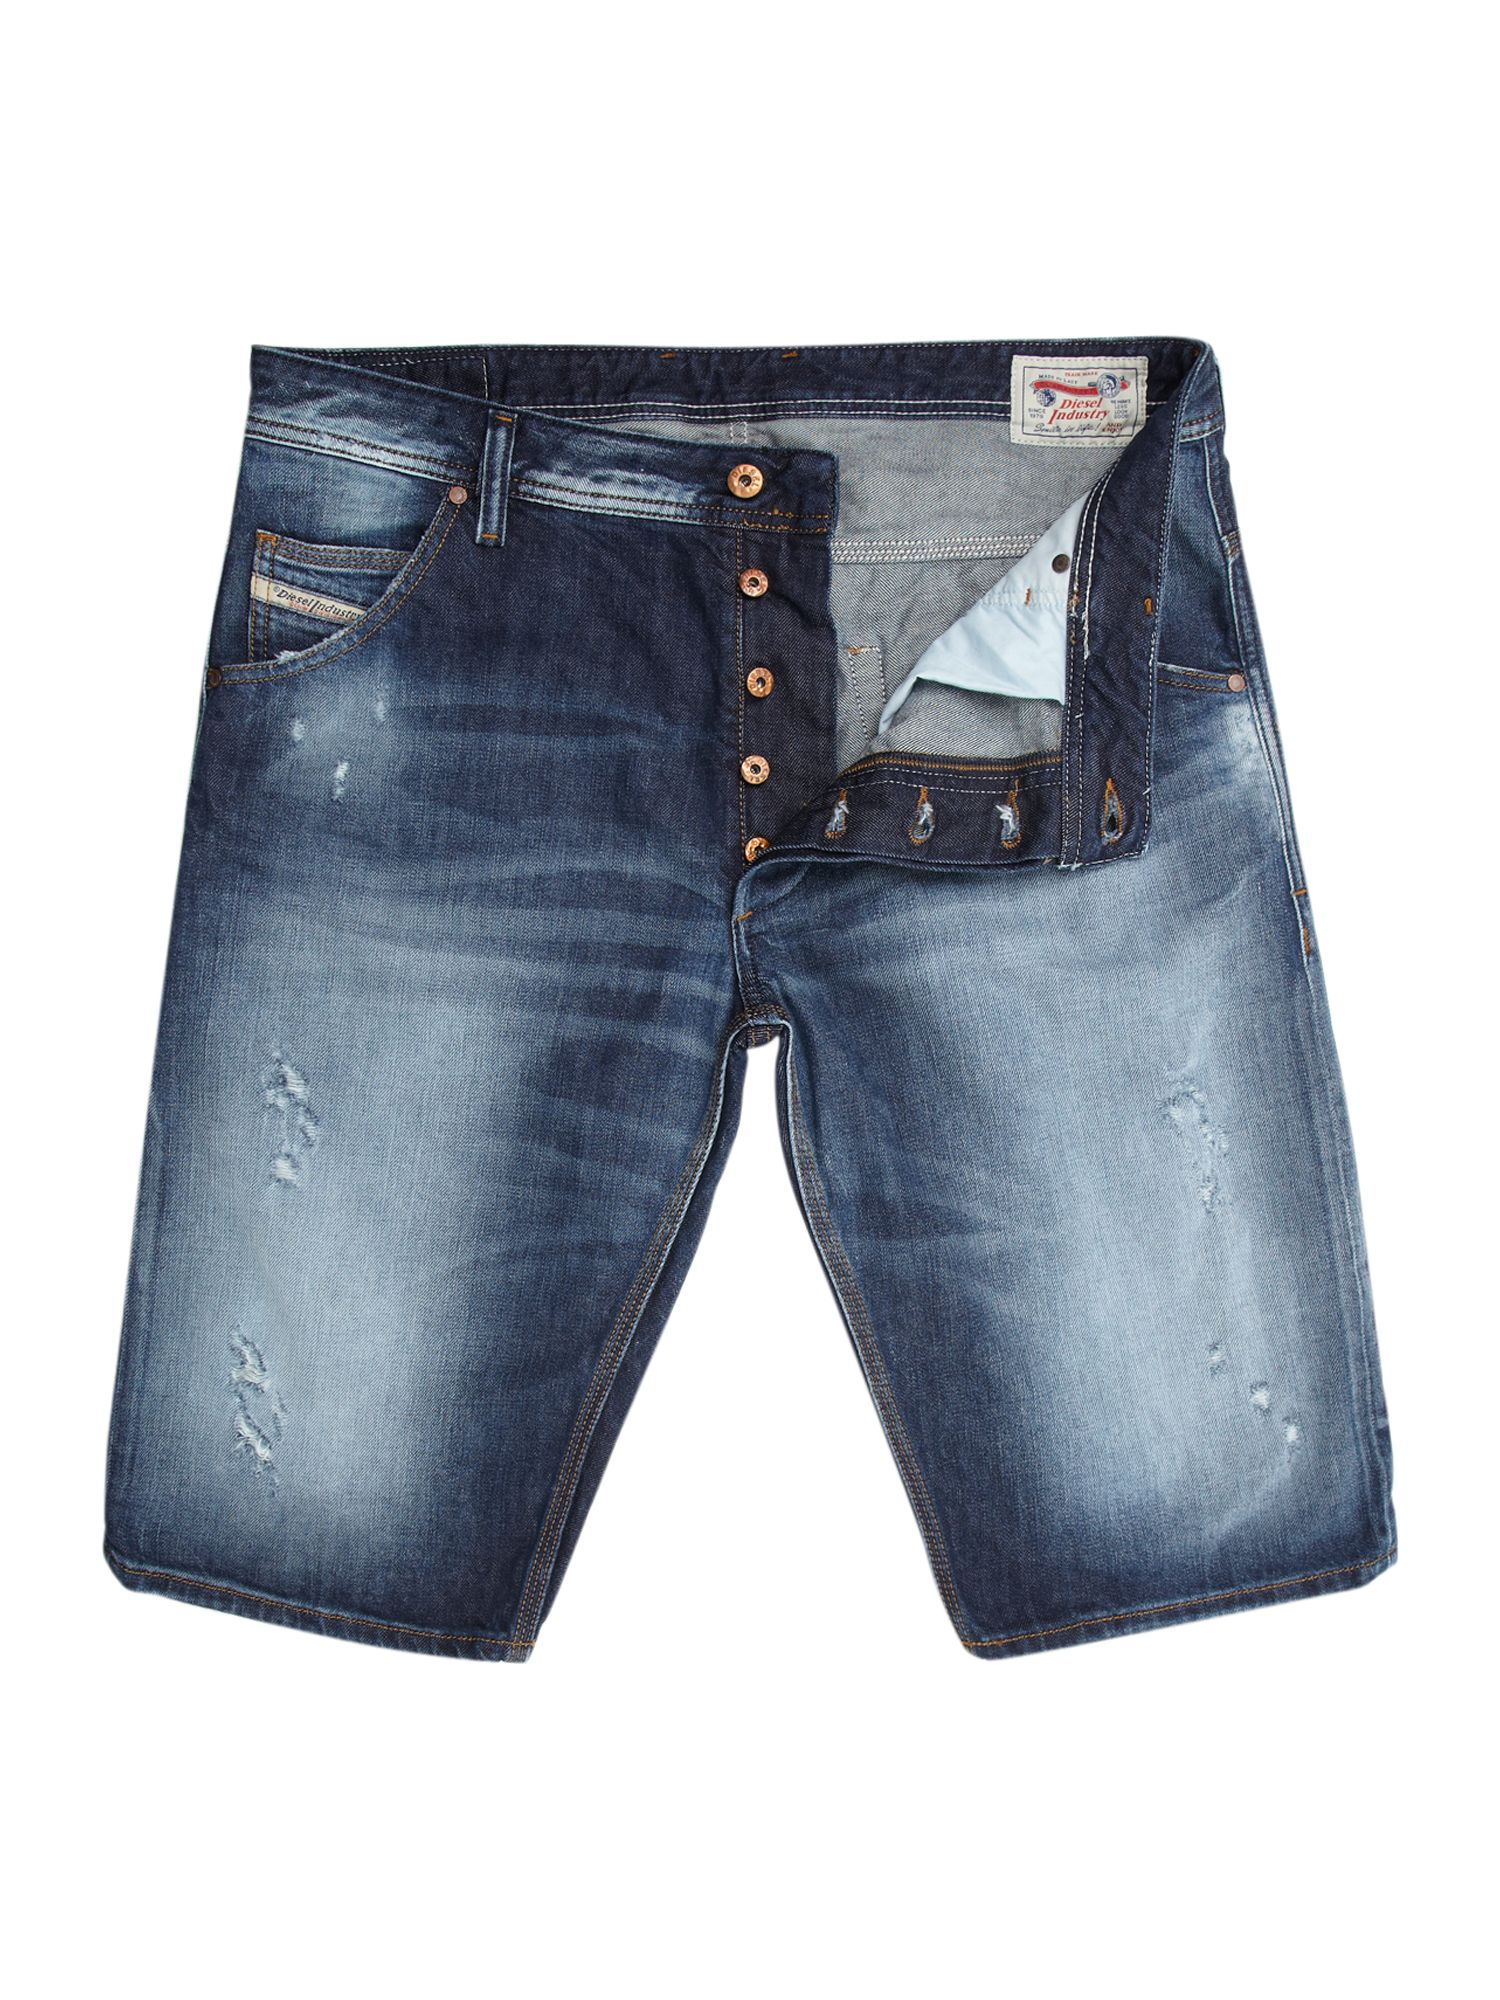 Krooley denim shorts